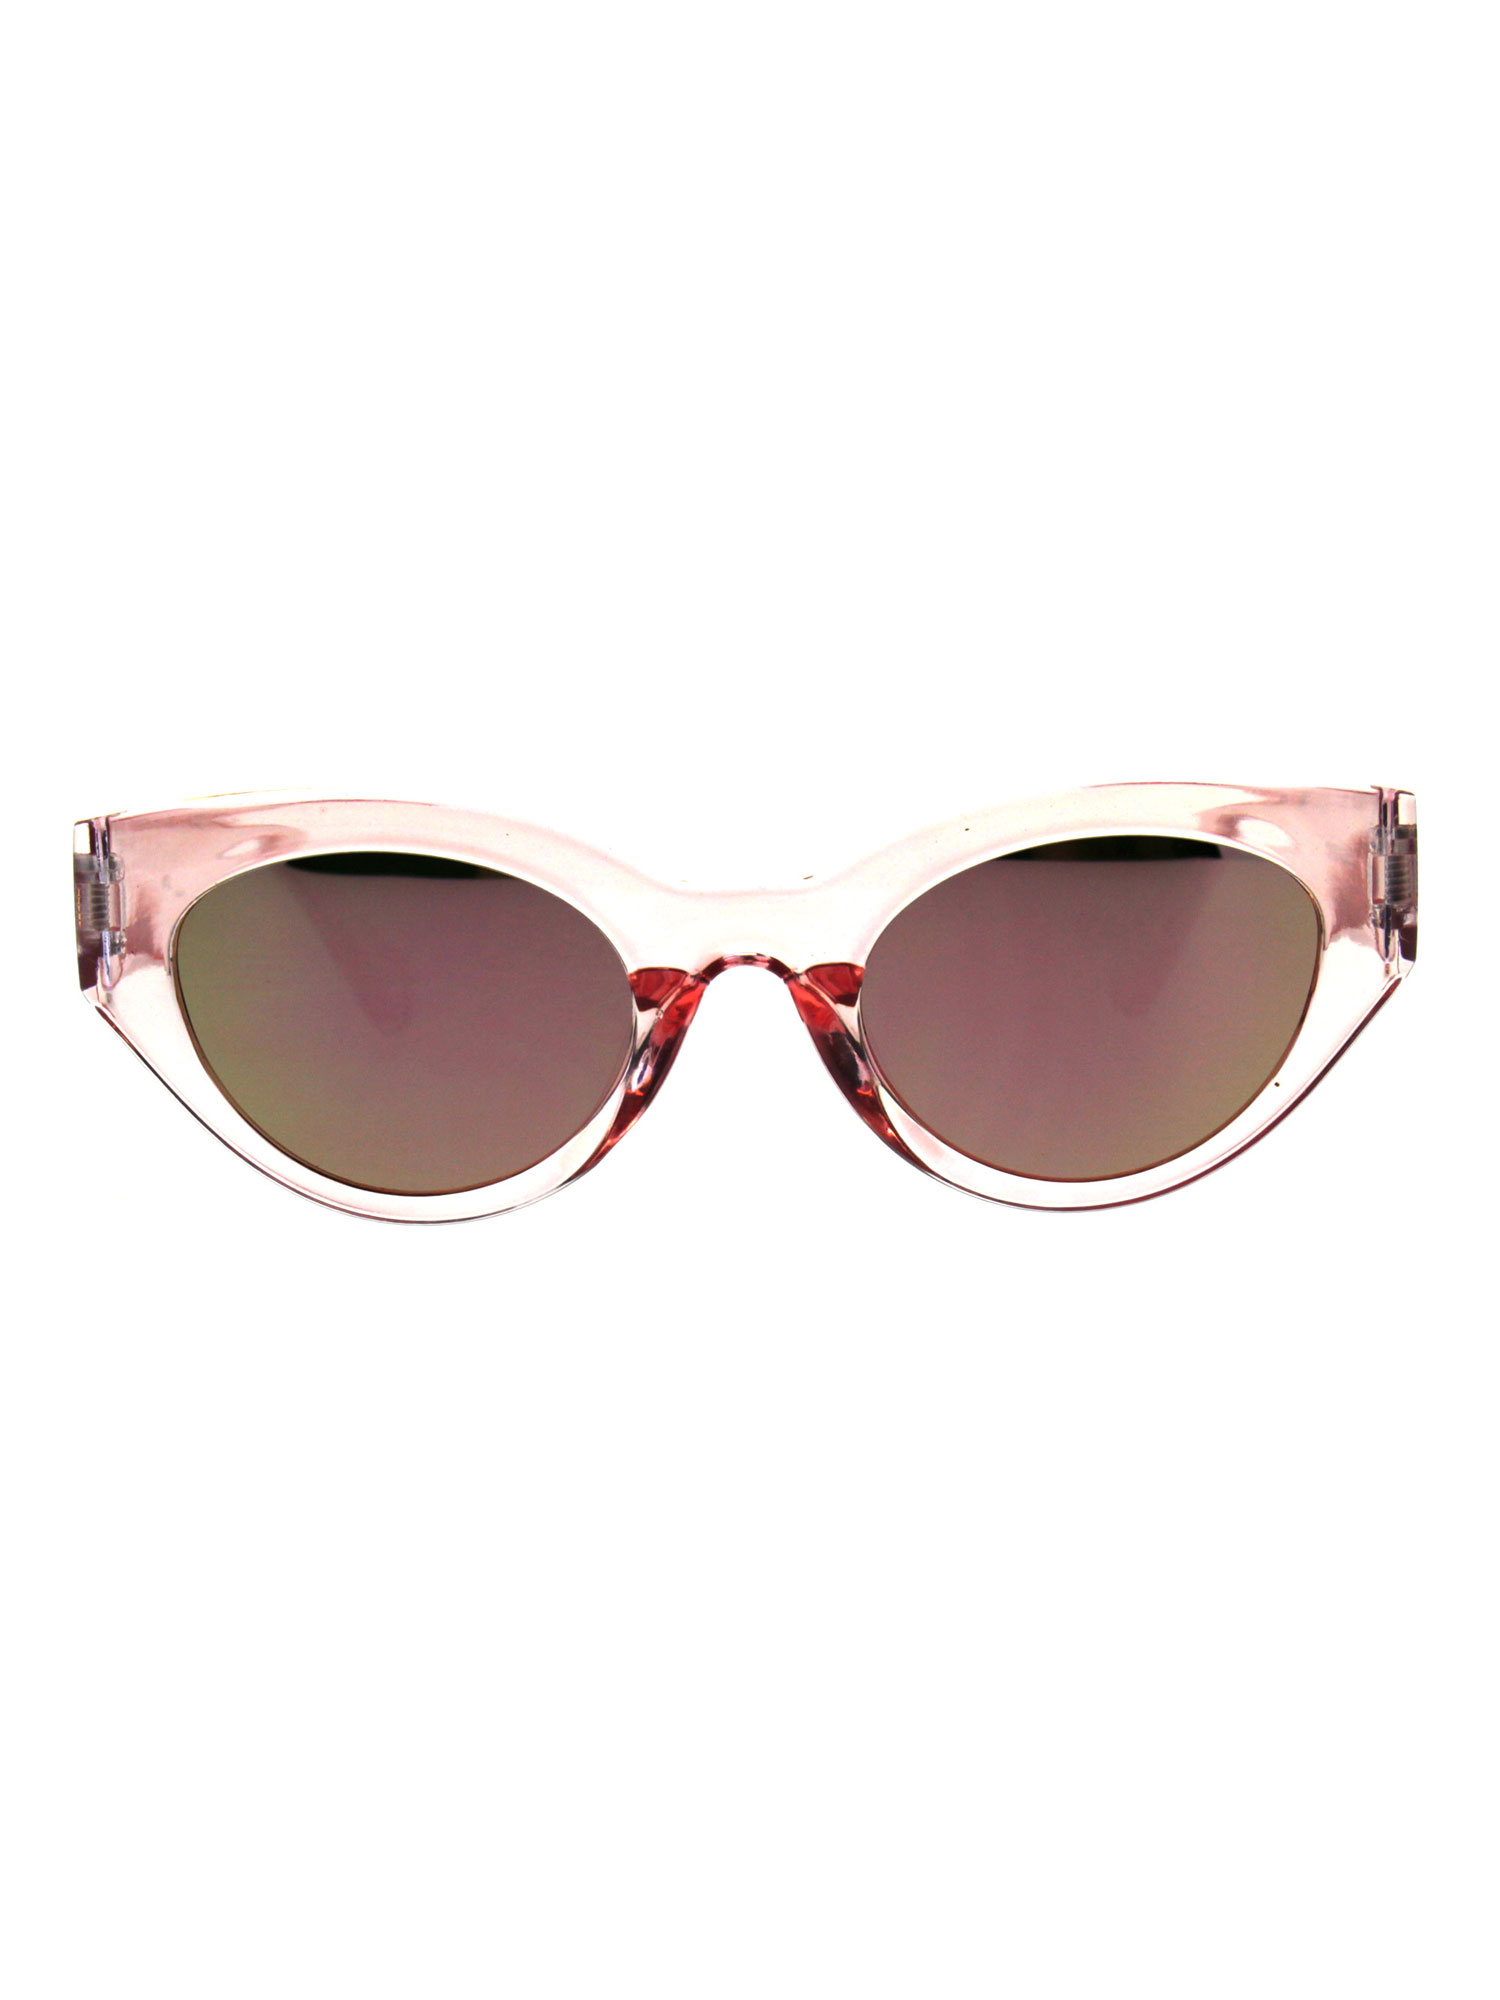 2a9b57ff62d SA106 - Womens Mod Design Thick Plastic Cat Eye Chic Sunglasses Clear Mirror  - Walmart.com